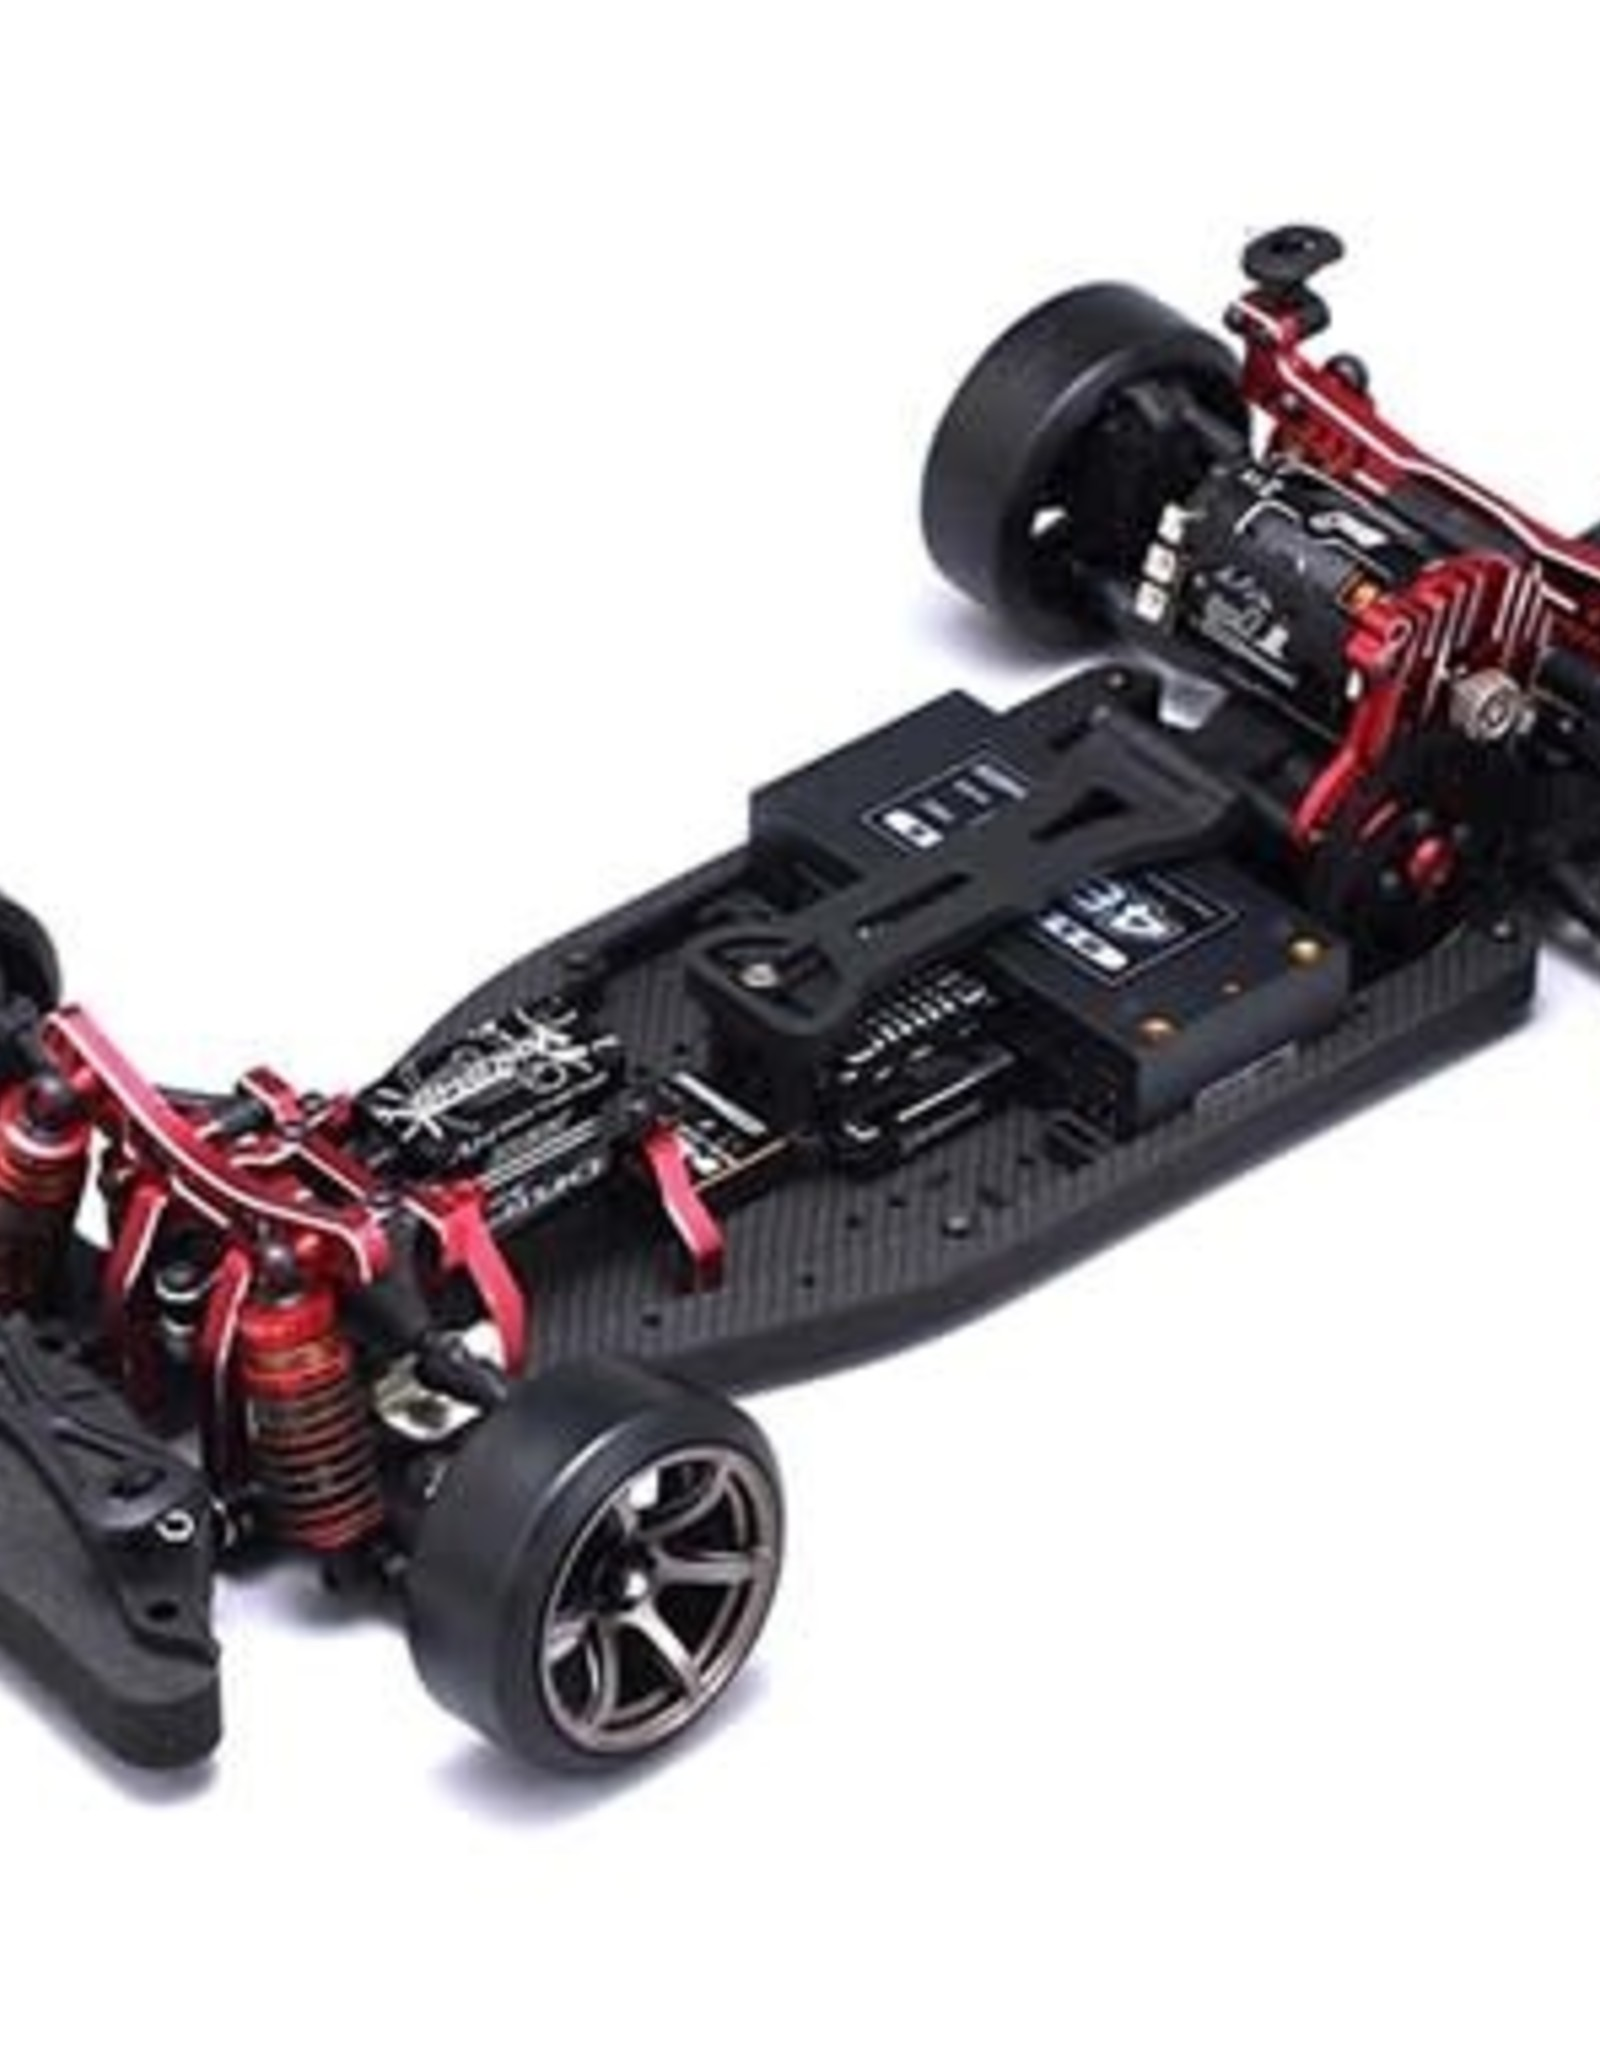 Yokomo YOKDP-YD2SX2R YD-2SXII Red Limited Chassis kit (DP-YD2SX2R) by Yokomo